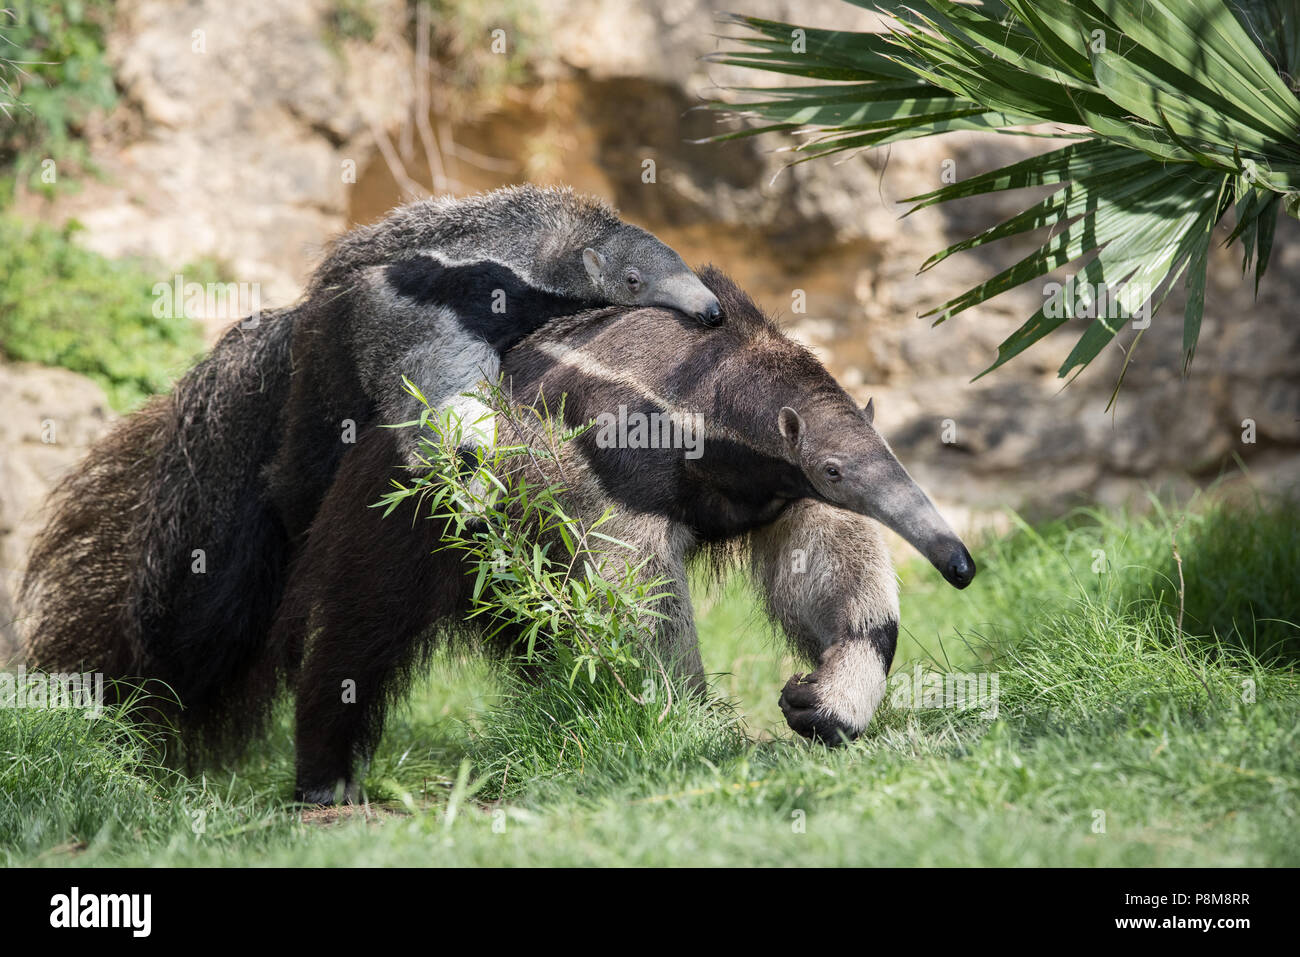 A Giant Anteater carries its baby at a zoo in Texas.  Native to Central and South America, Giant Anteaters are vulnerable to extinction in the wild. Stock Photo